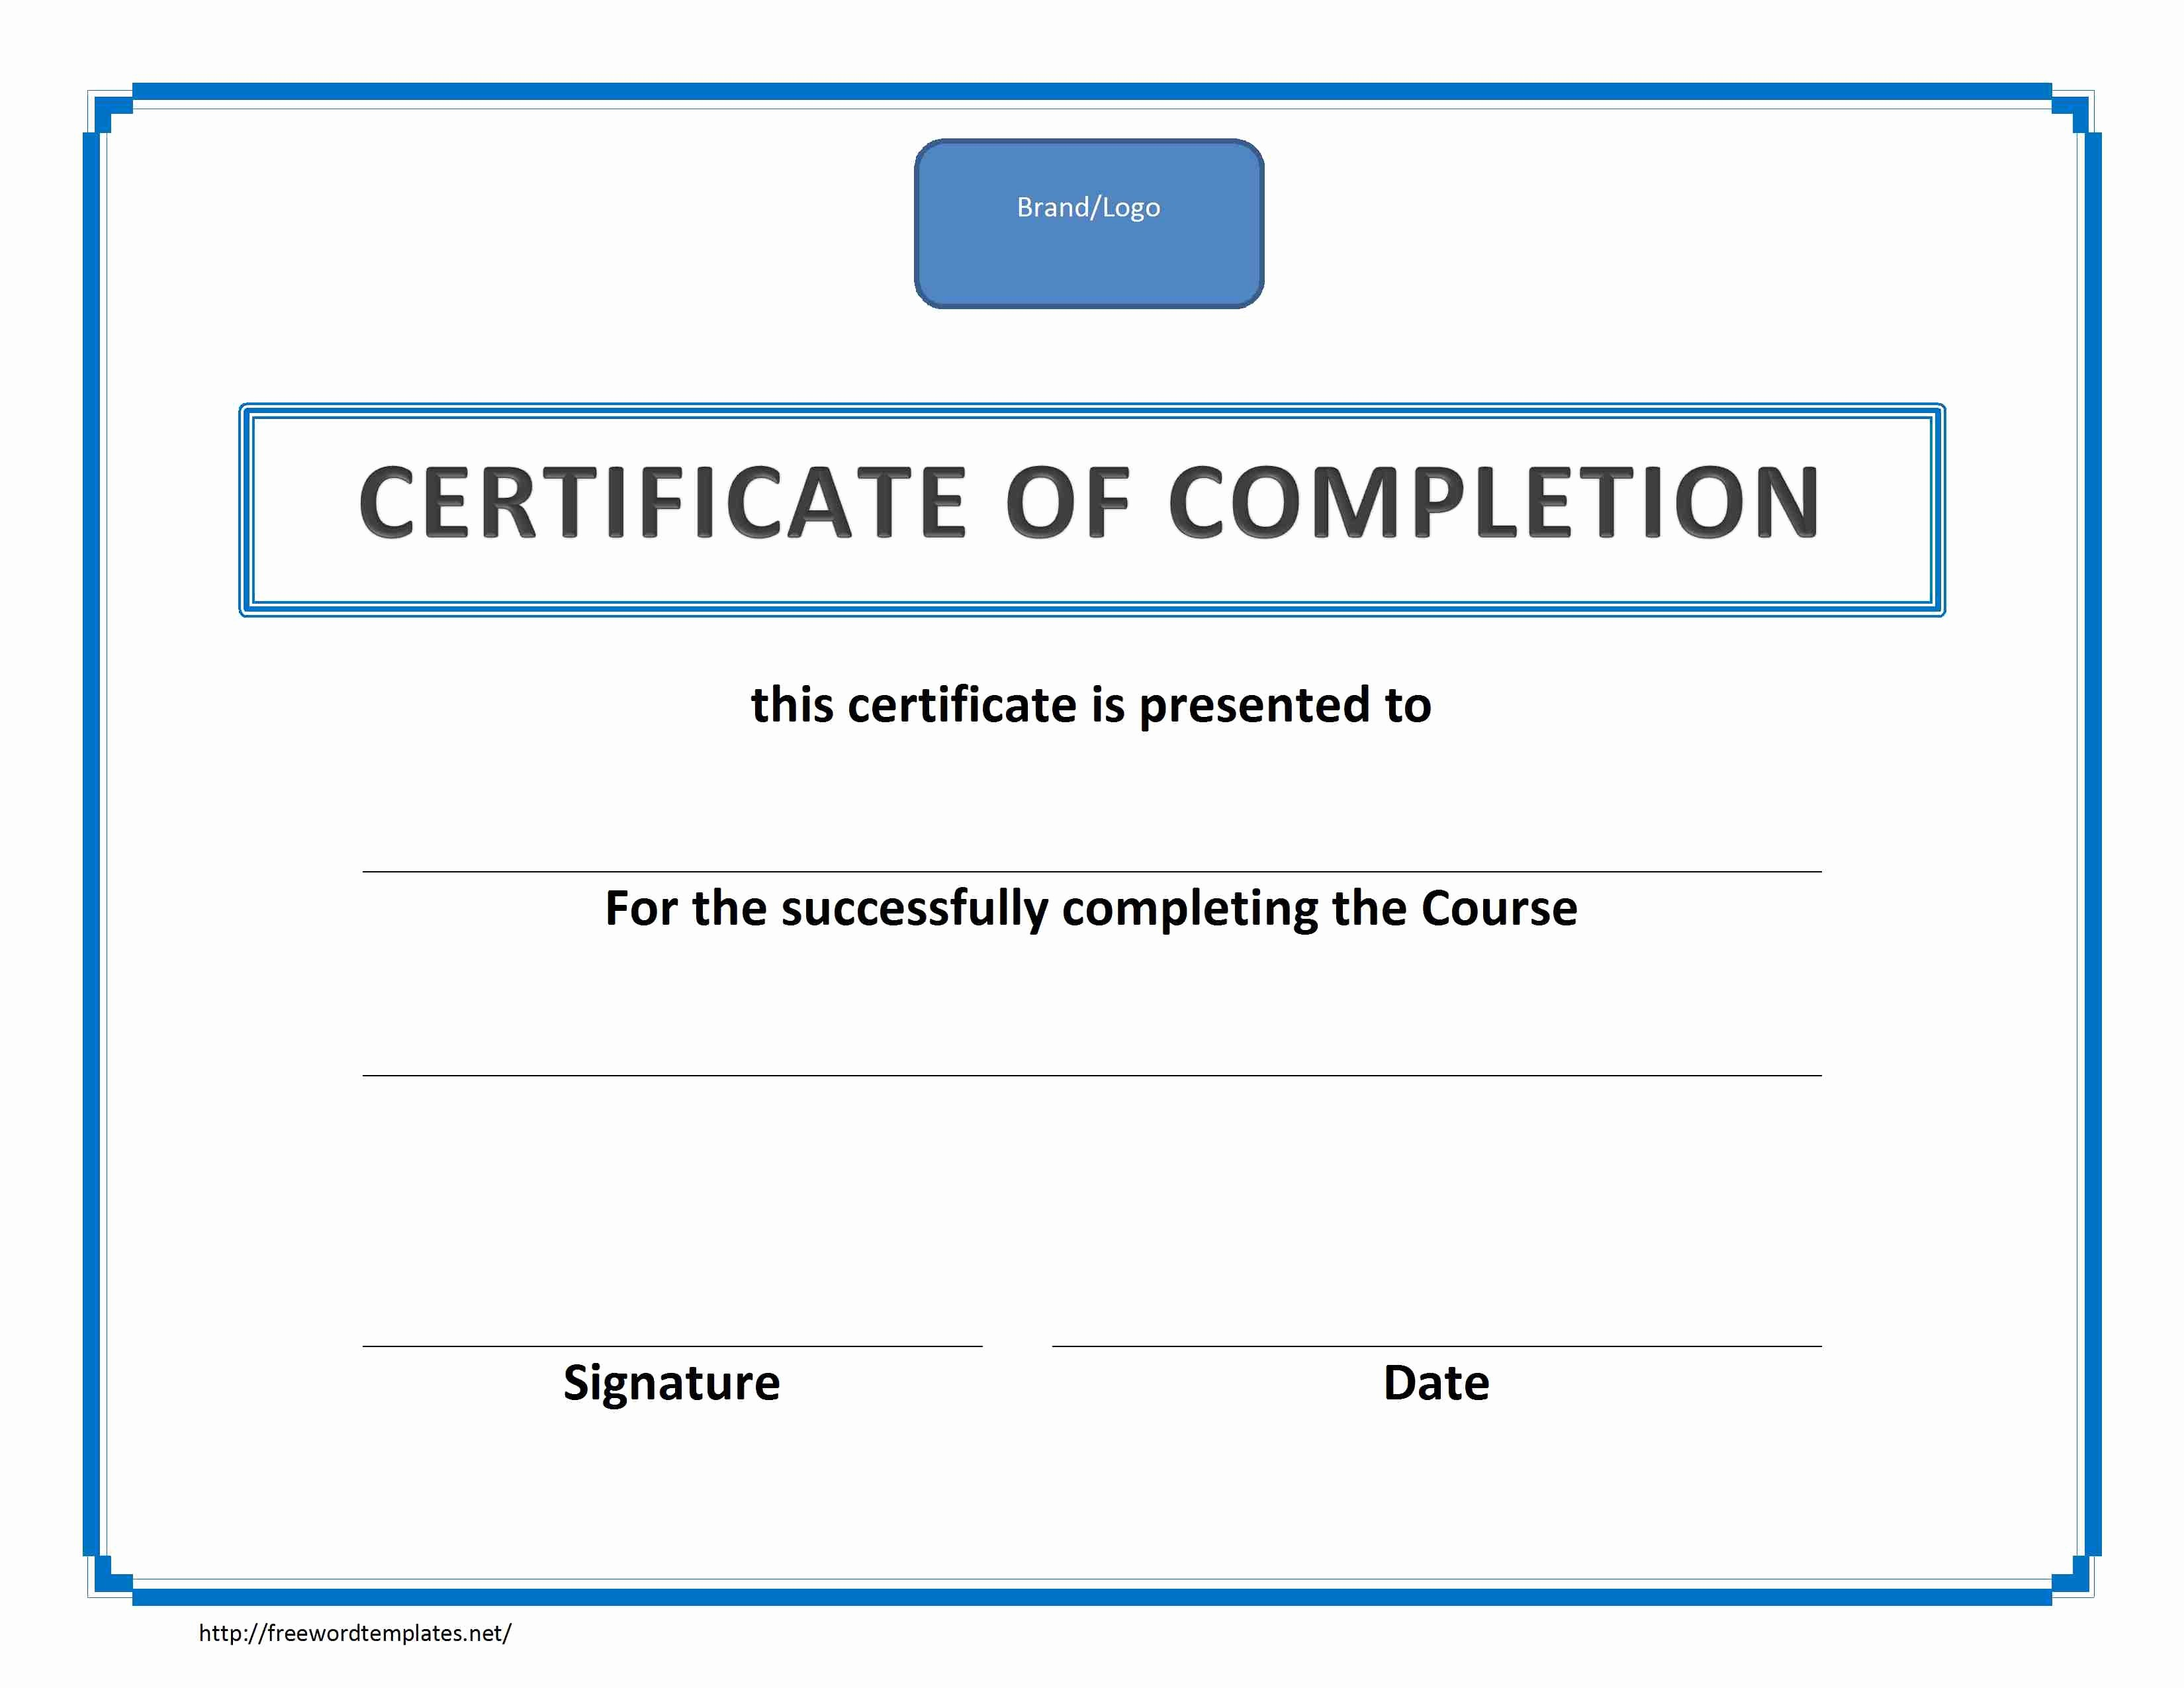 Sample Training Certificate Of Completion Fresh Training Certificate Of Pletion Landscape Template